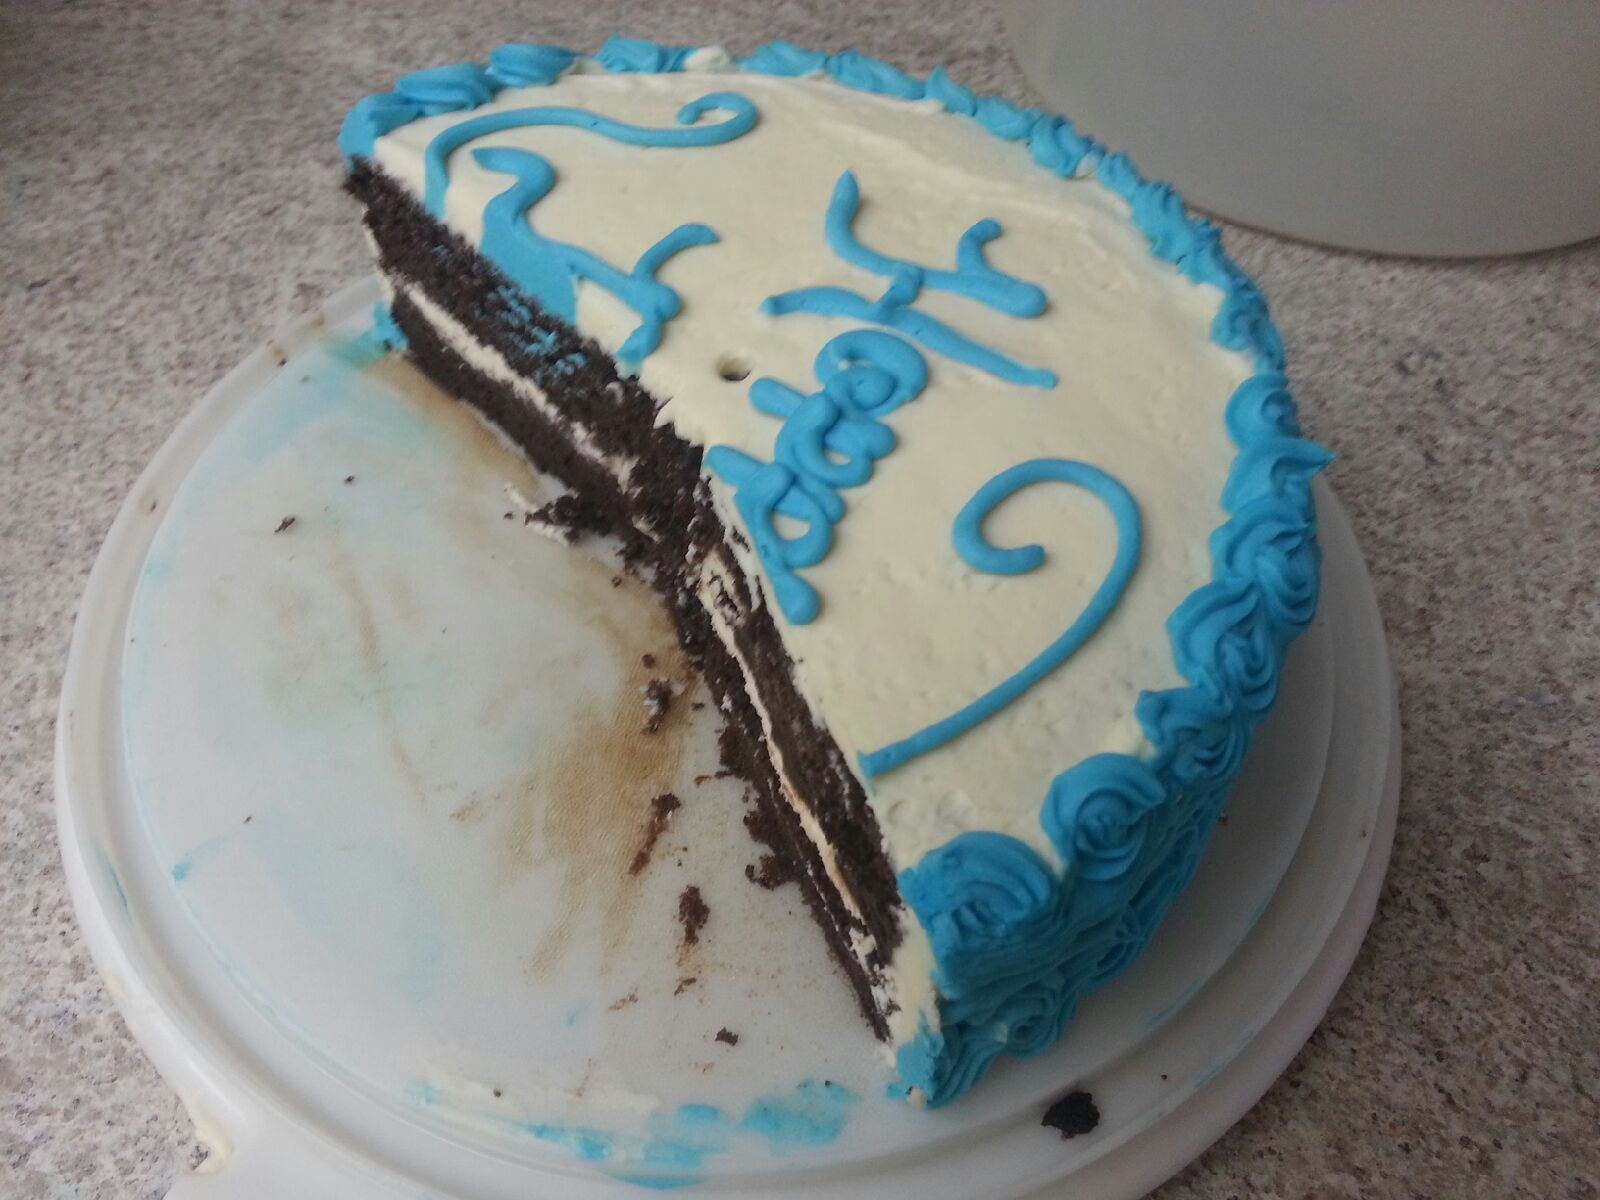 Best Cake Recipes For Icing: Best Chocolate Cake With Vanilla Buttercream Frosting